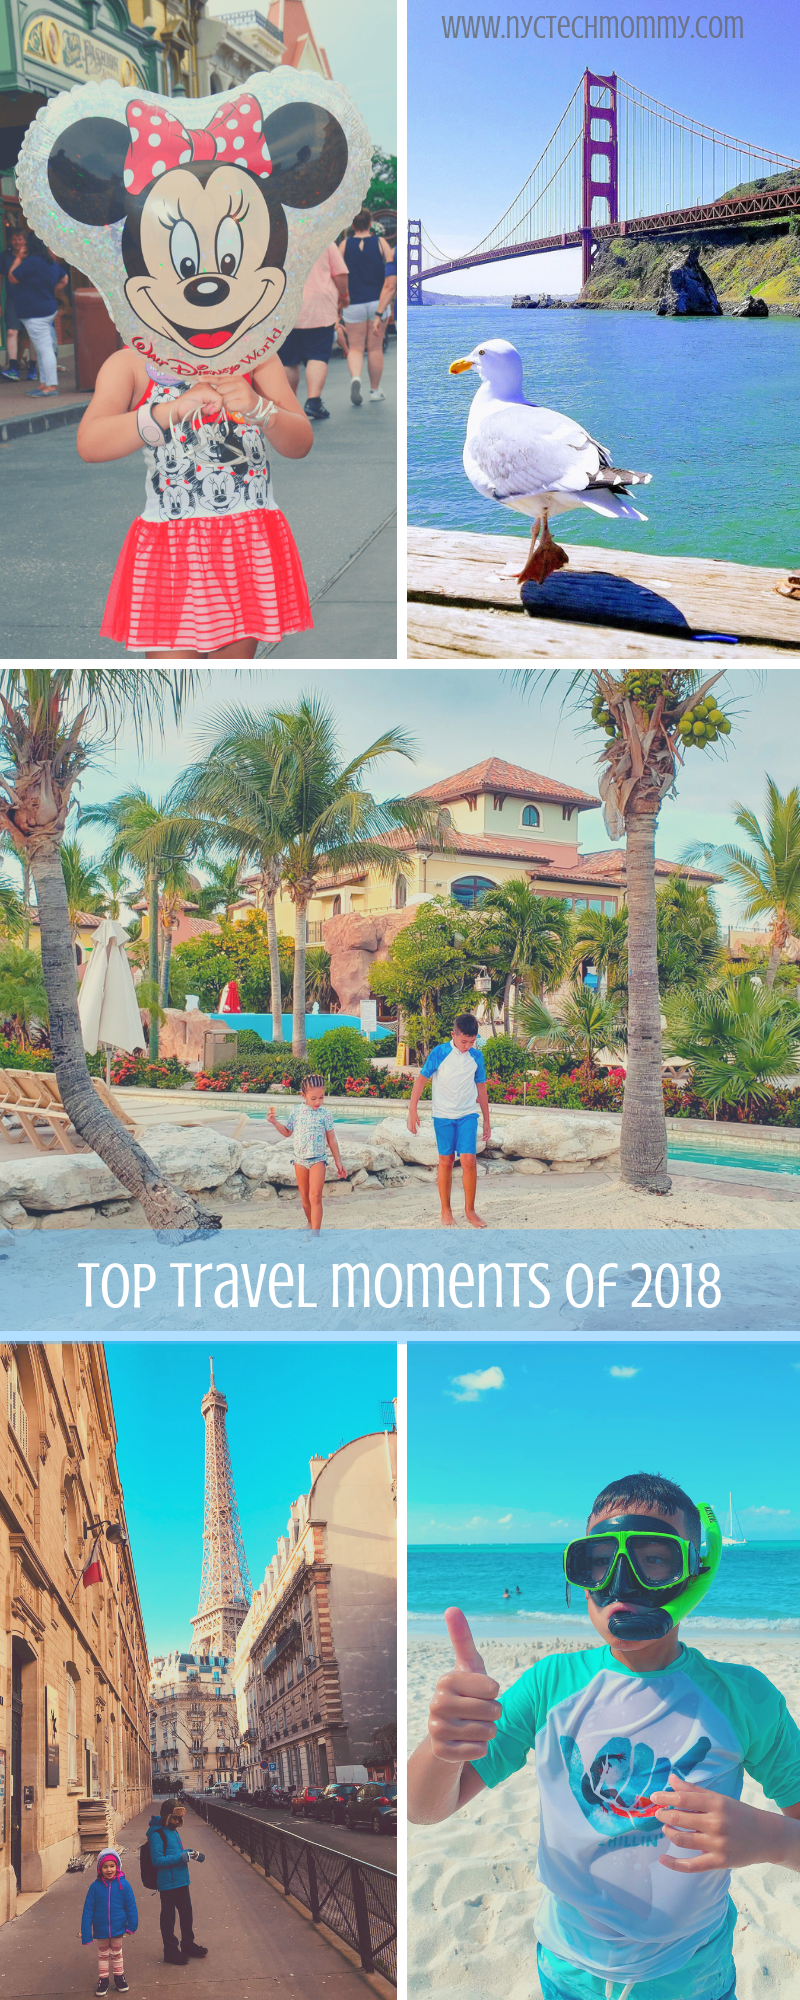 Top Travel Moments of 2018